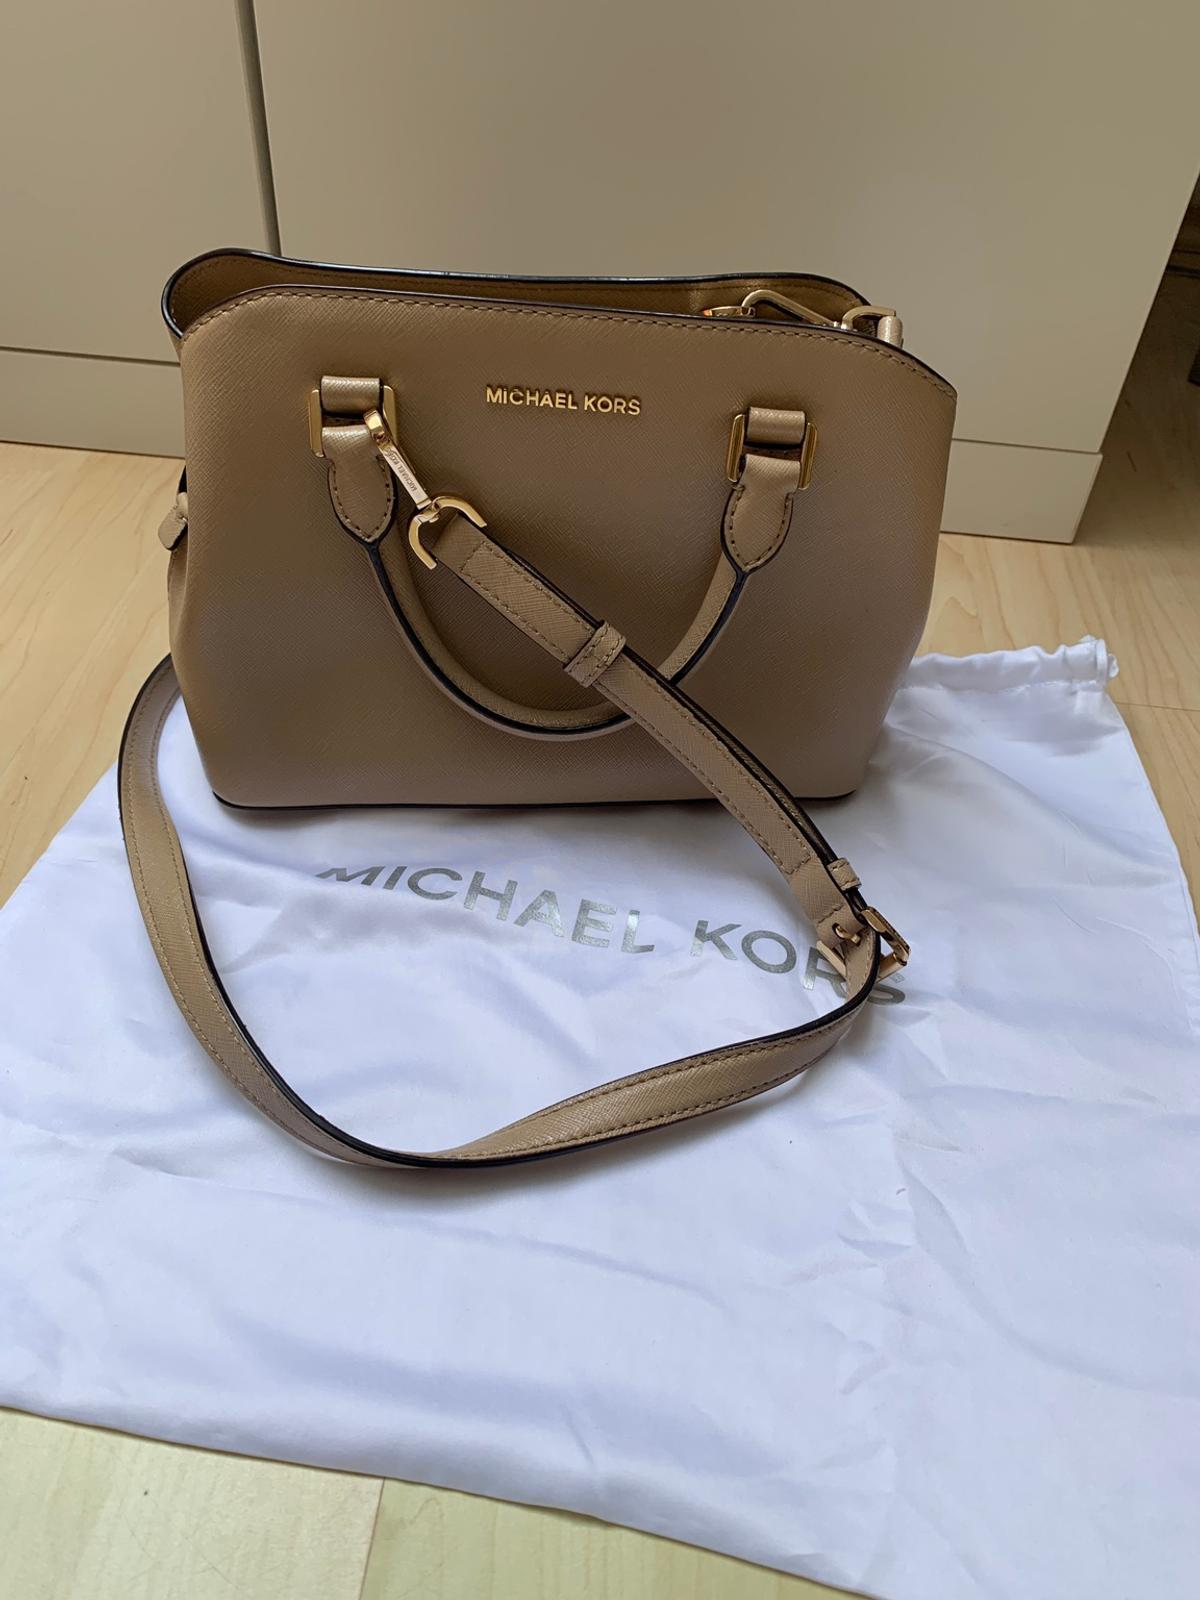 Michael Kors Tasche klein in 64390 Erzhausen for €120.00 for